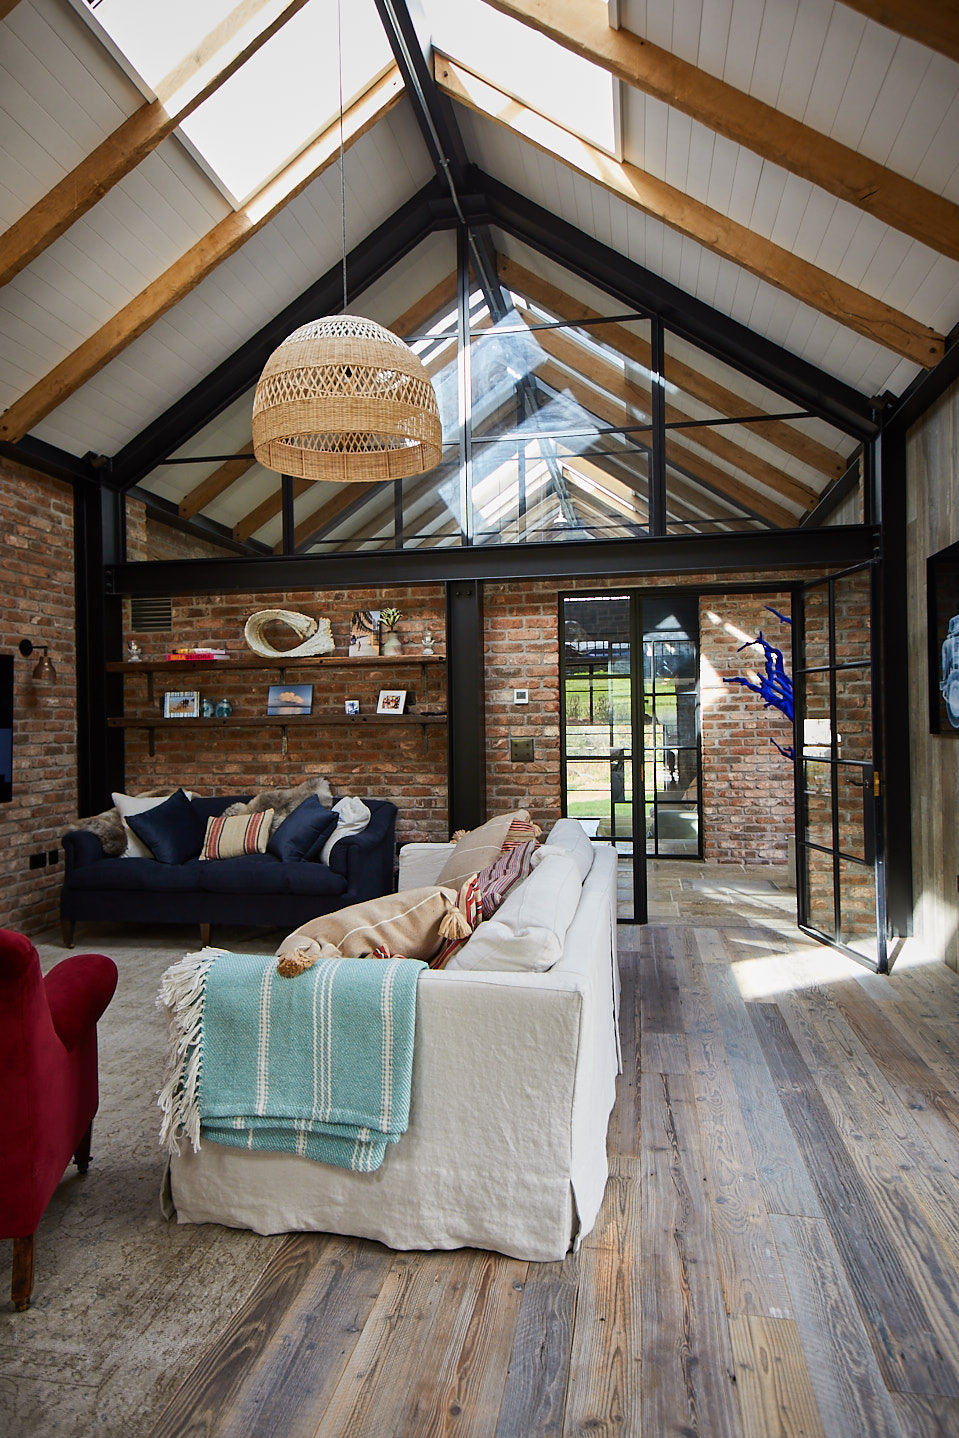 The Cornwall project living area with The Main Company reclaimed wooden flooring